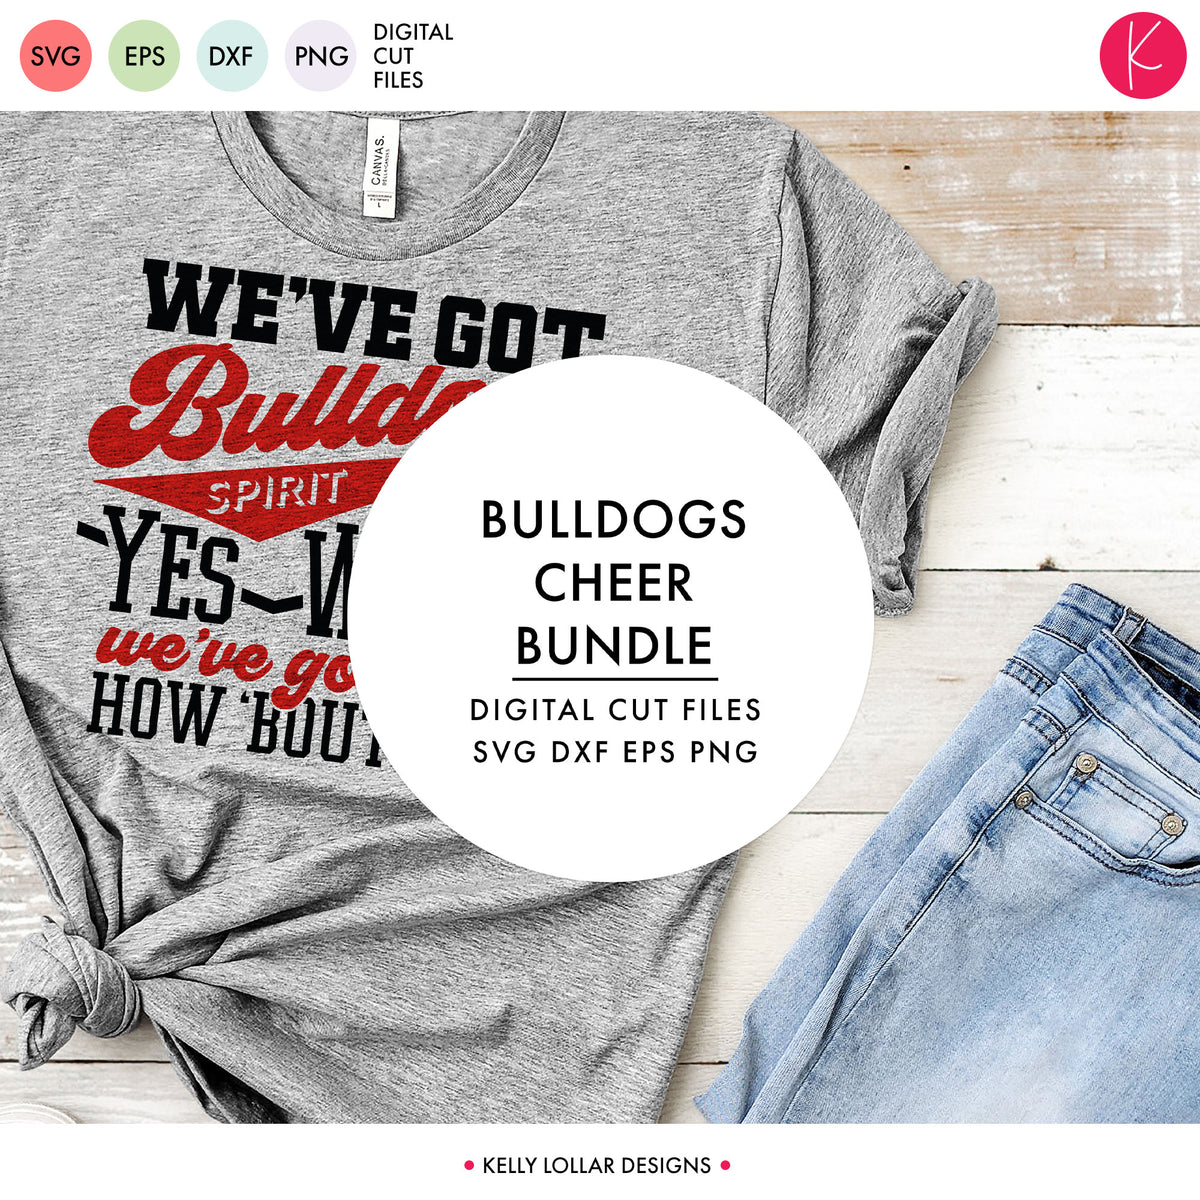 Bulldogs Cheer Bundle | SVG DXF EPS PNG Cut Files